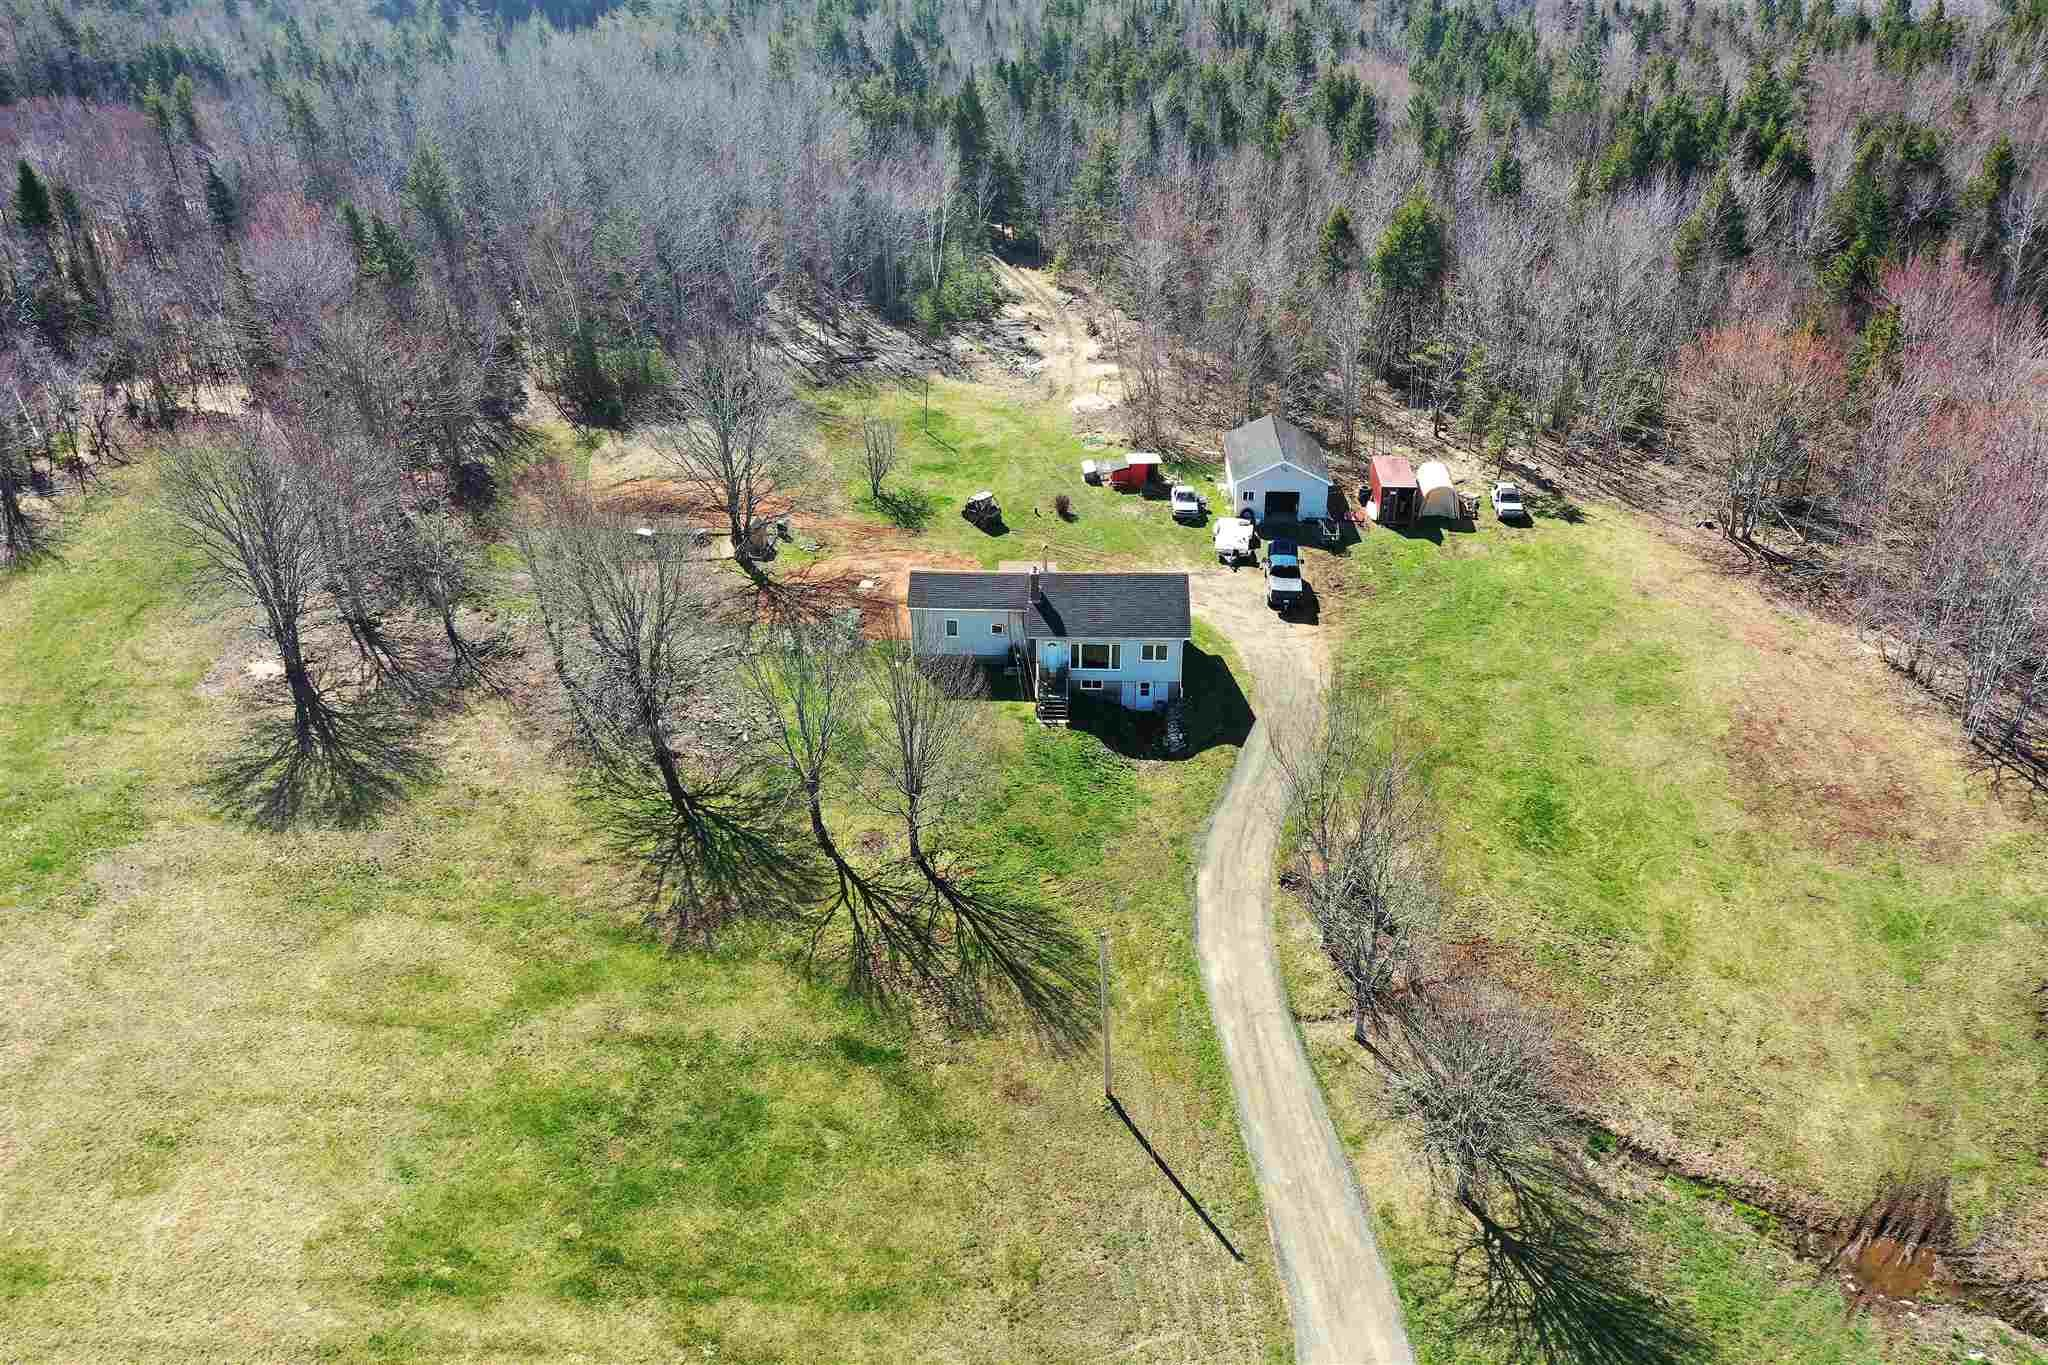 Main Photo: 155 OLD NORTH RANGE Road in Plympton Station: 401-Digby County Residential for sale (Annapolis Valley)  : MLS®# 202109791